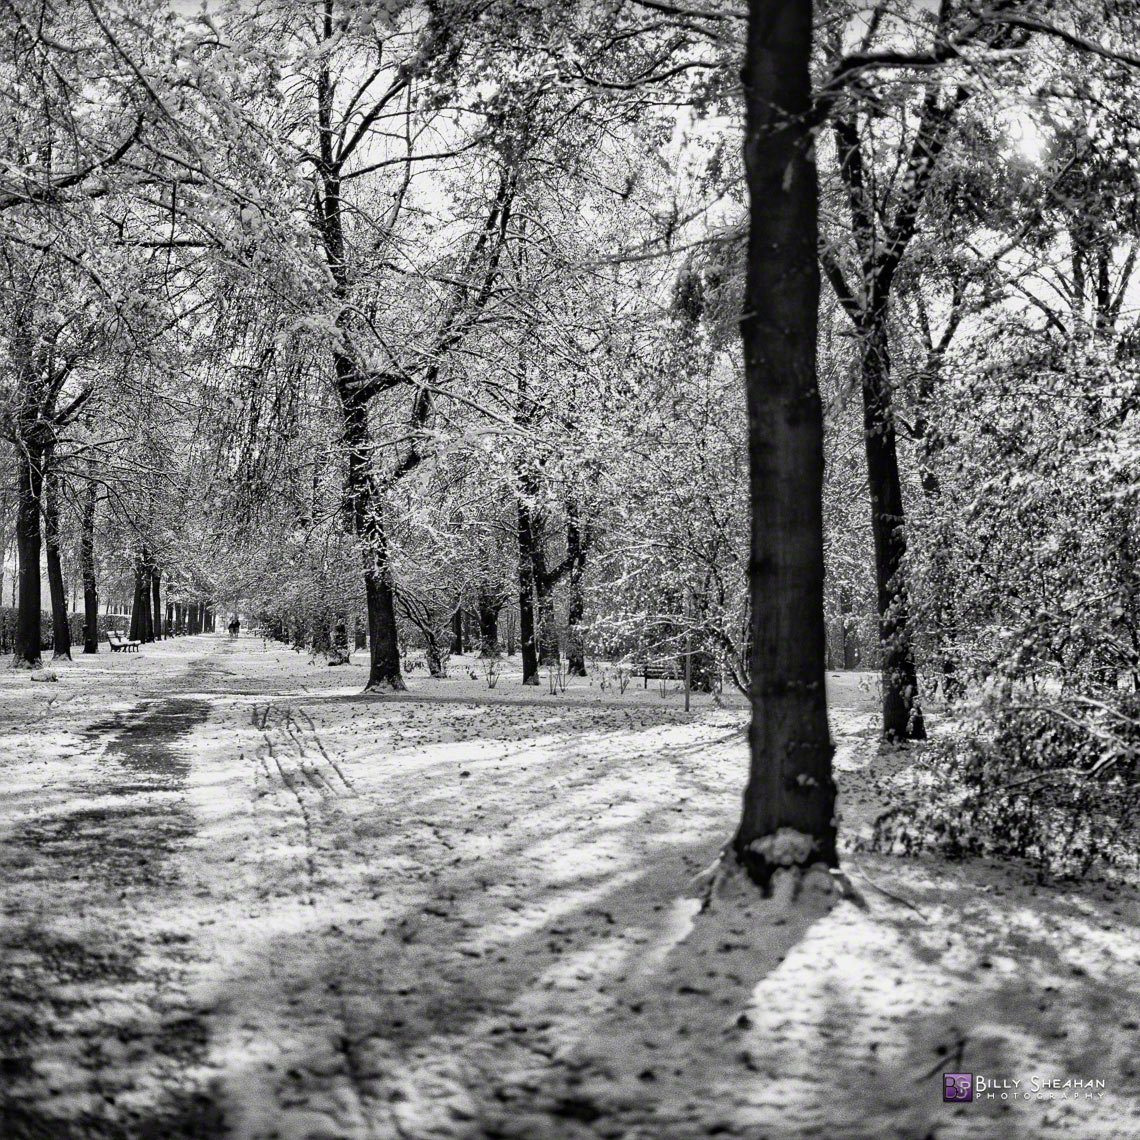 Tiergarten_Snowy_Path__Berlin__Germany_Germany-360_01_BW_D